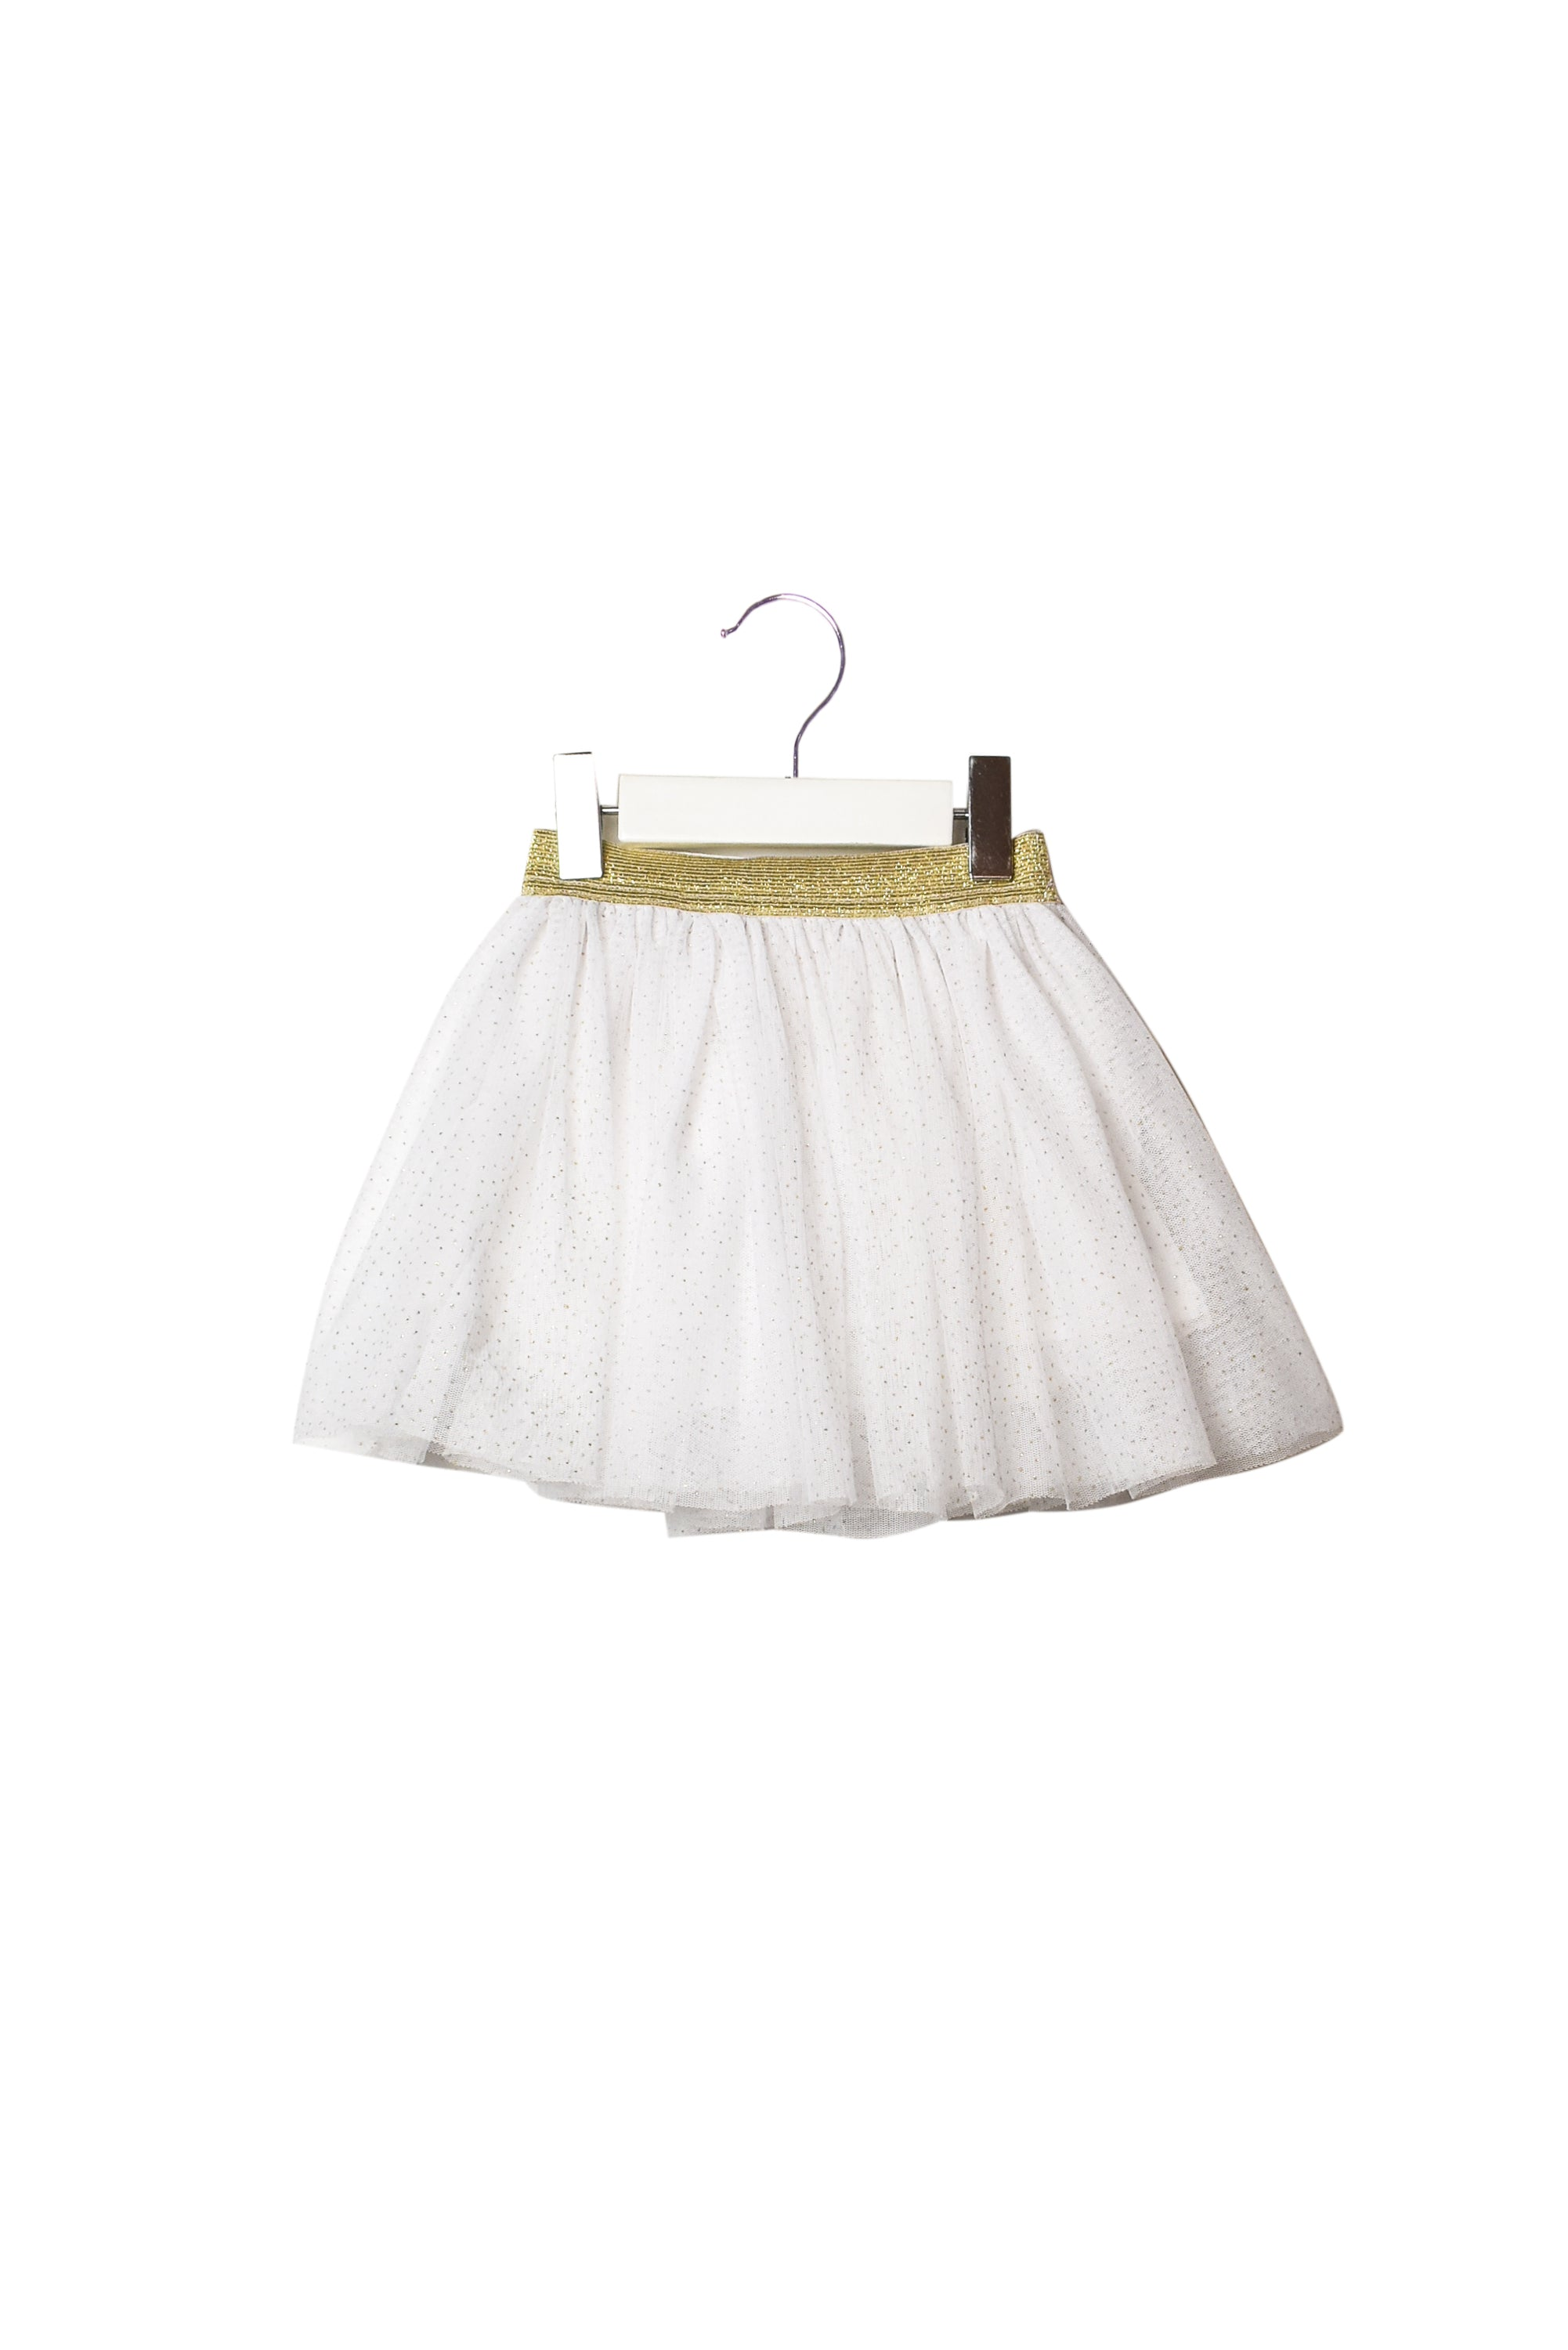 10008427 Seed Kids~Skirt 3T, Seed Retykle | Online Baby & Kids Clothing Hong Kong